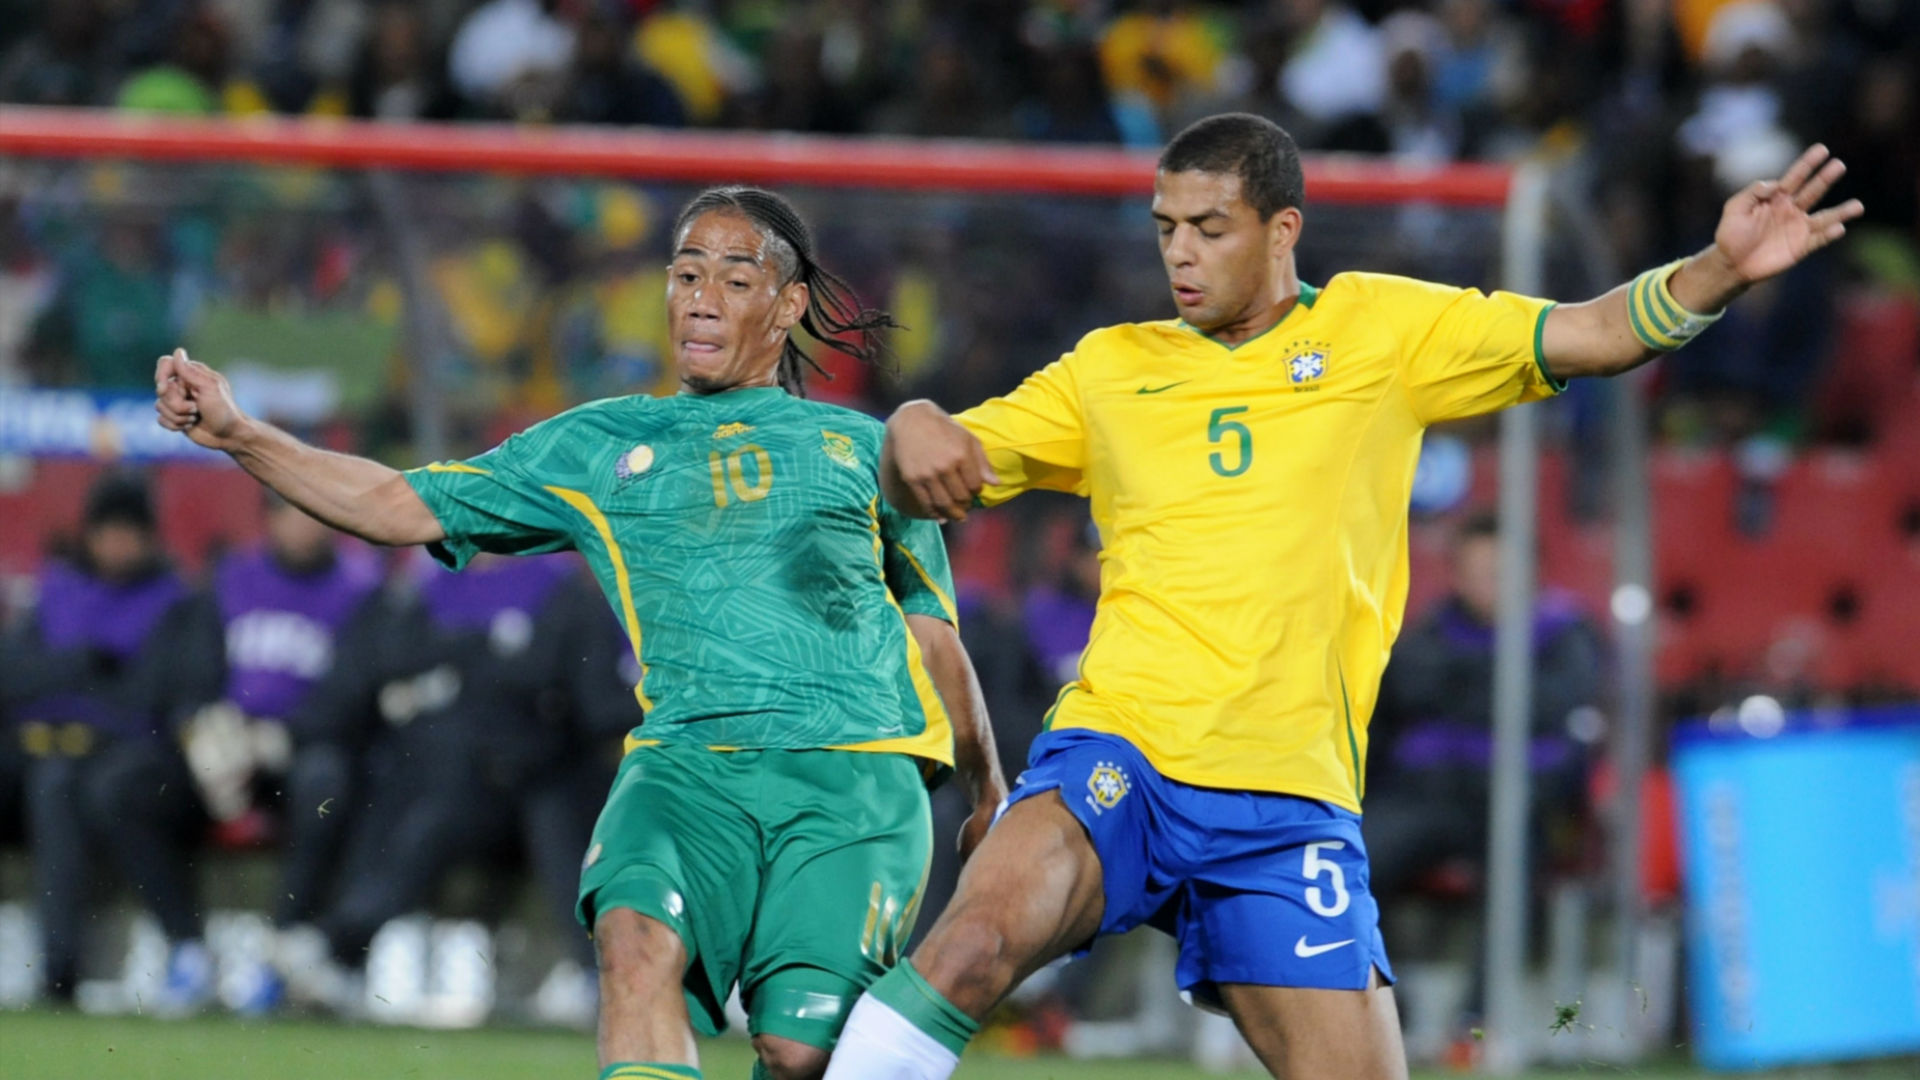 http://images.performgroup.com/di/library/Goal_South_Africa/e/2/steven-pienaar-and-felipe-melo_tx4gimxmtbw21svf7na61a6rg.jpg